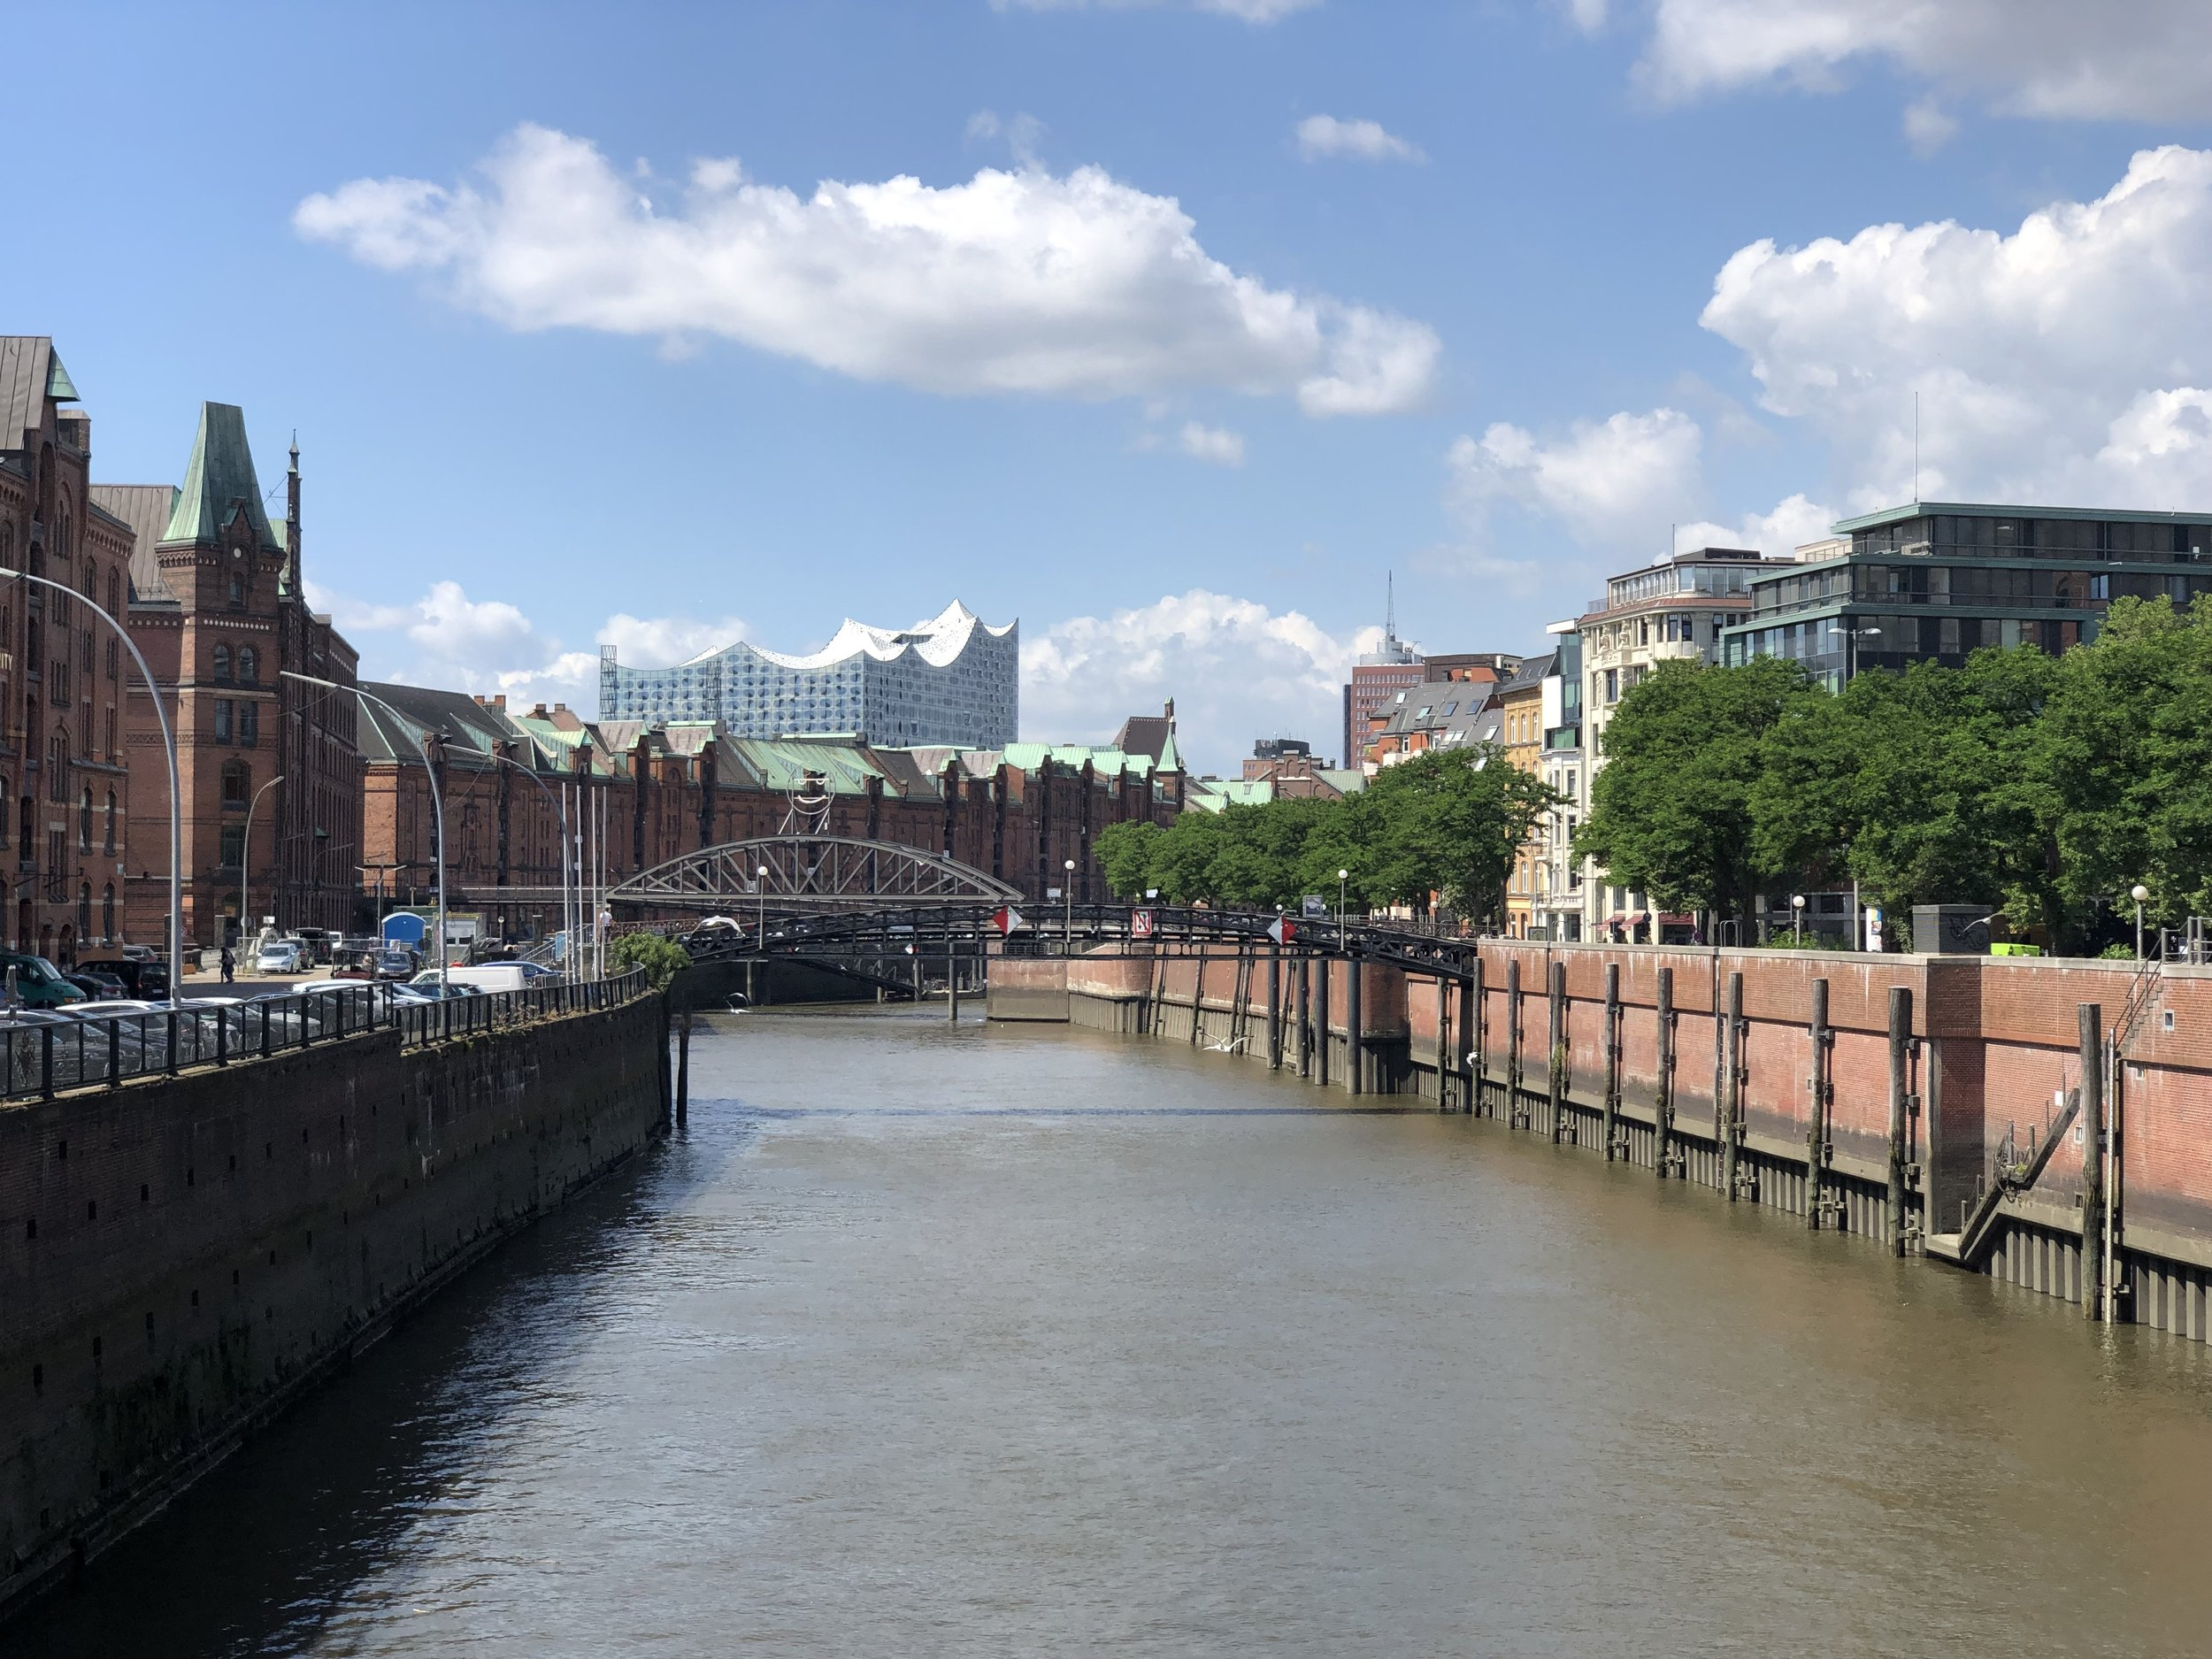 This photo is of a canal in the Hamburg Warehouse District. In the distance is the Elphie which is a fantastic venue for a a wide variety of musical performances.